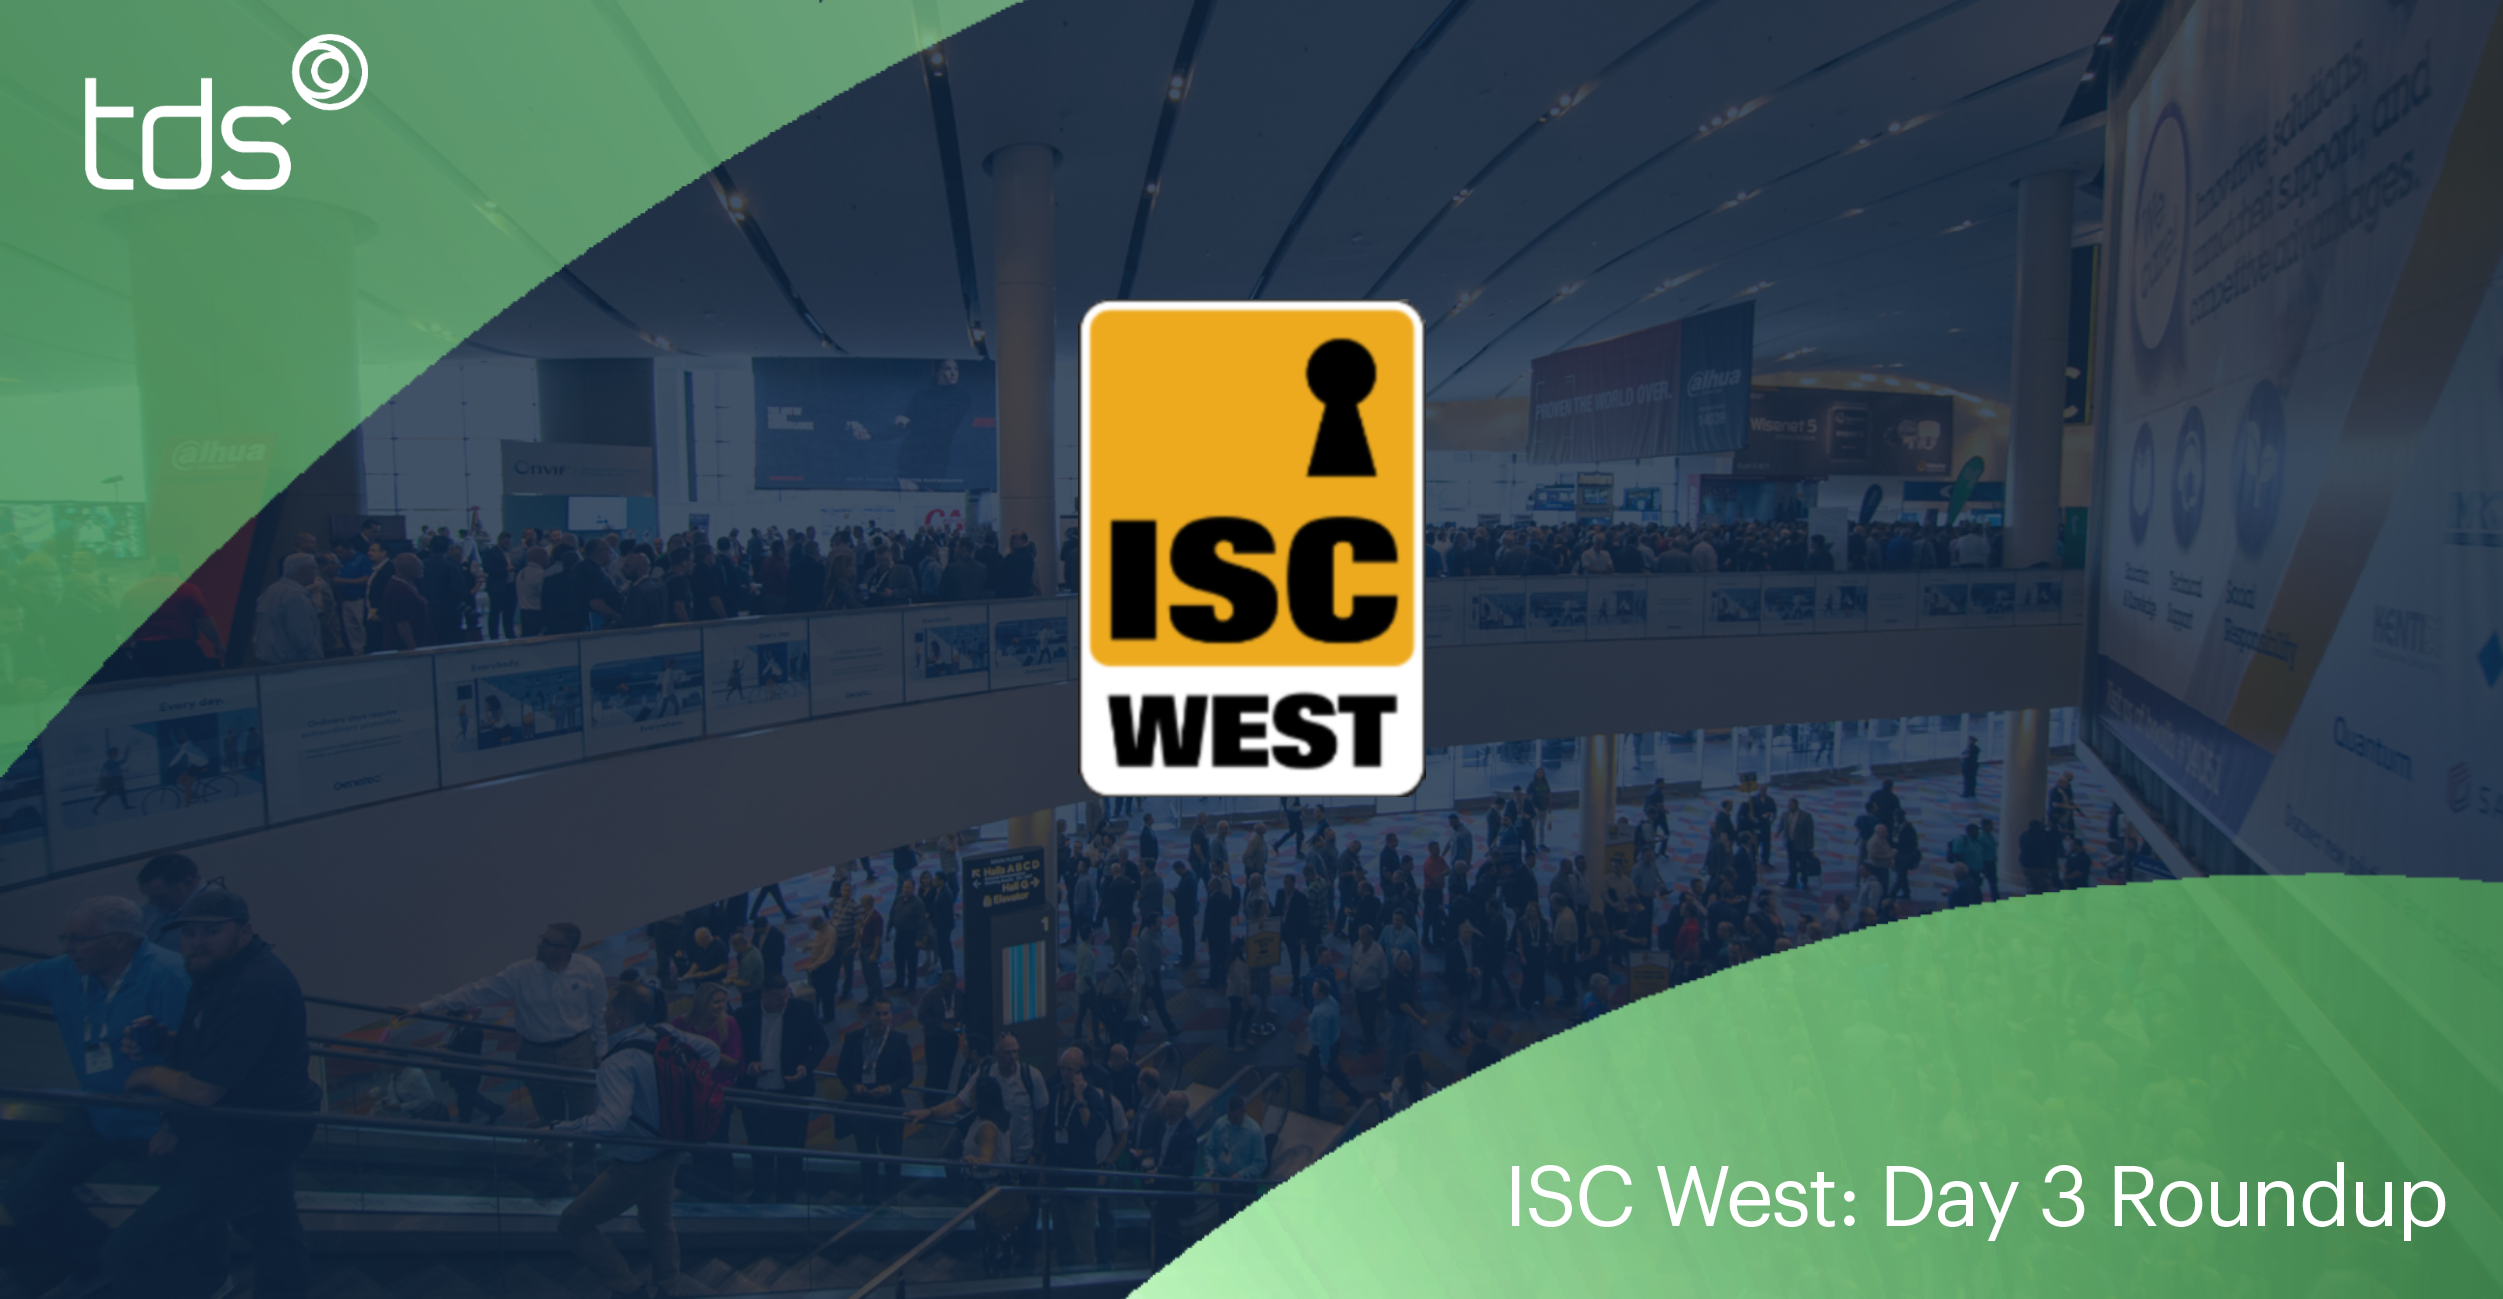 ISC-West-Day-3-Roundup